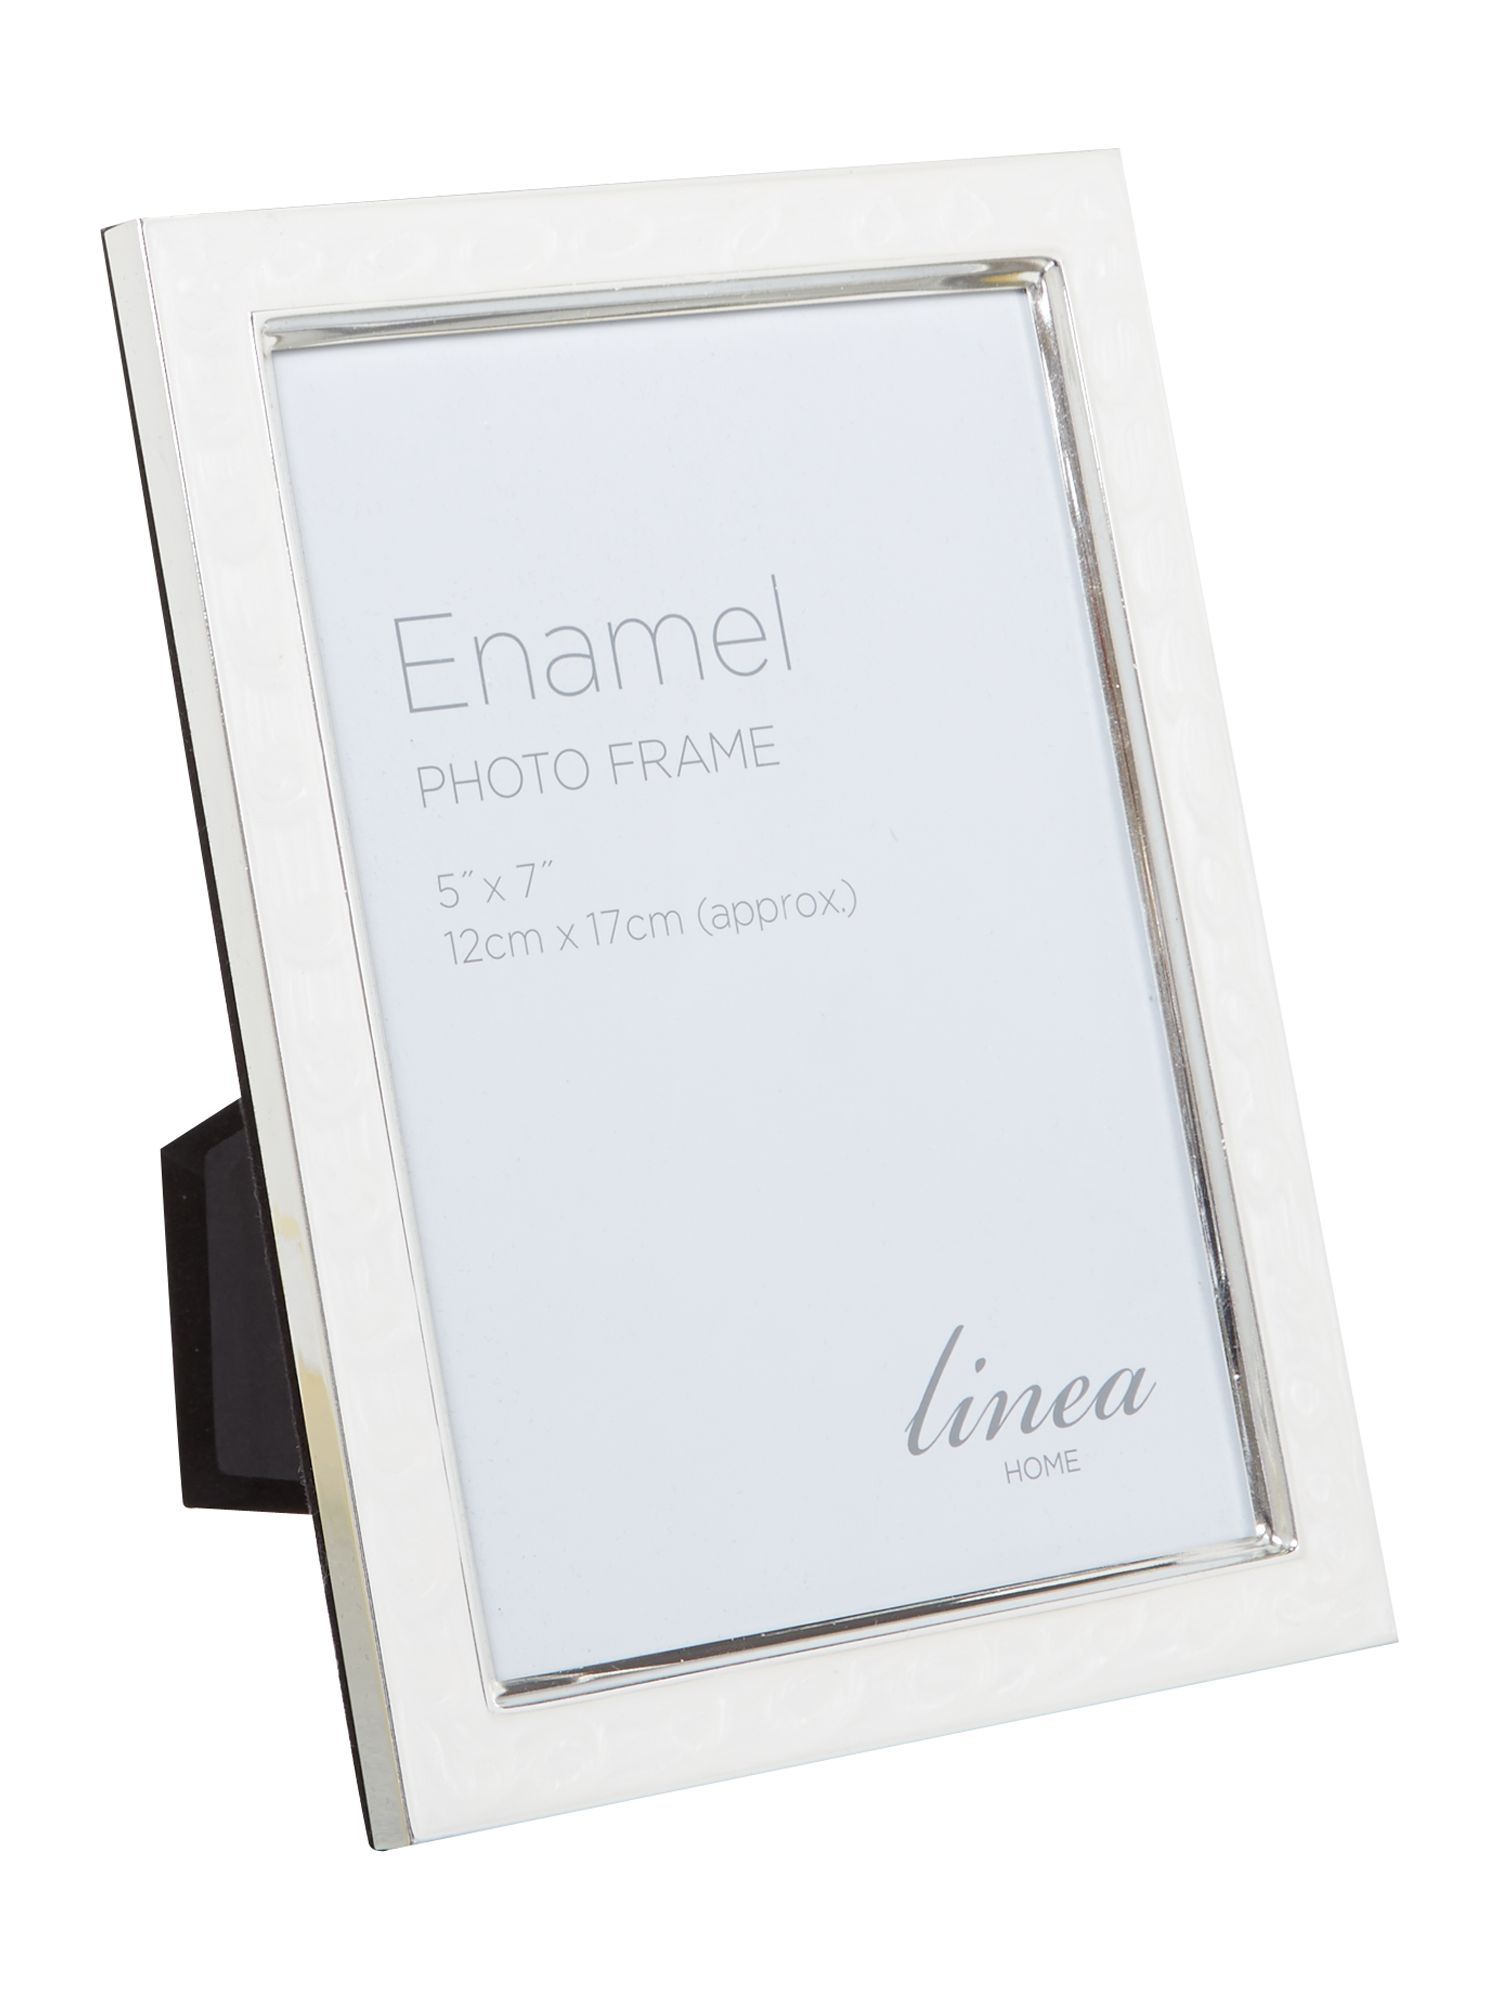 Cream enamel photo frame, 5 x 7